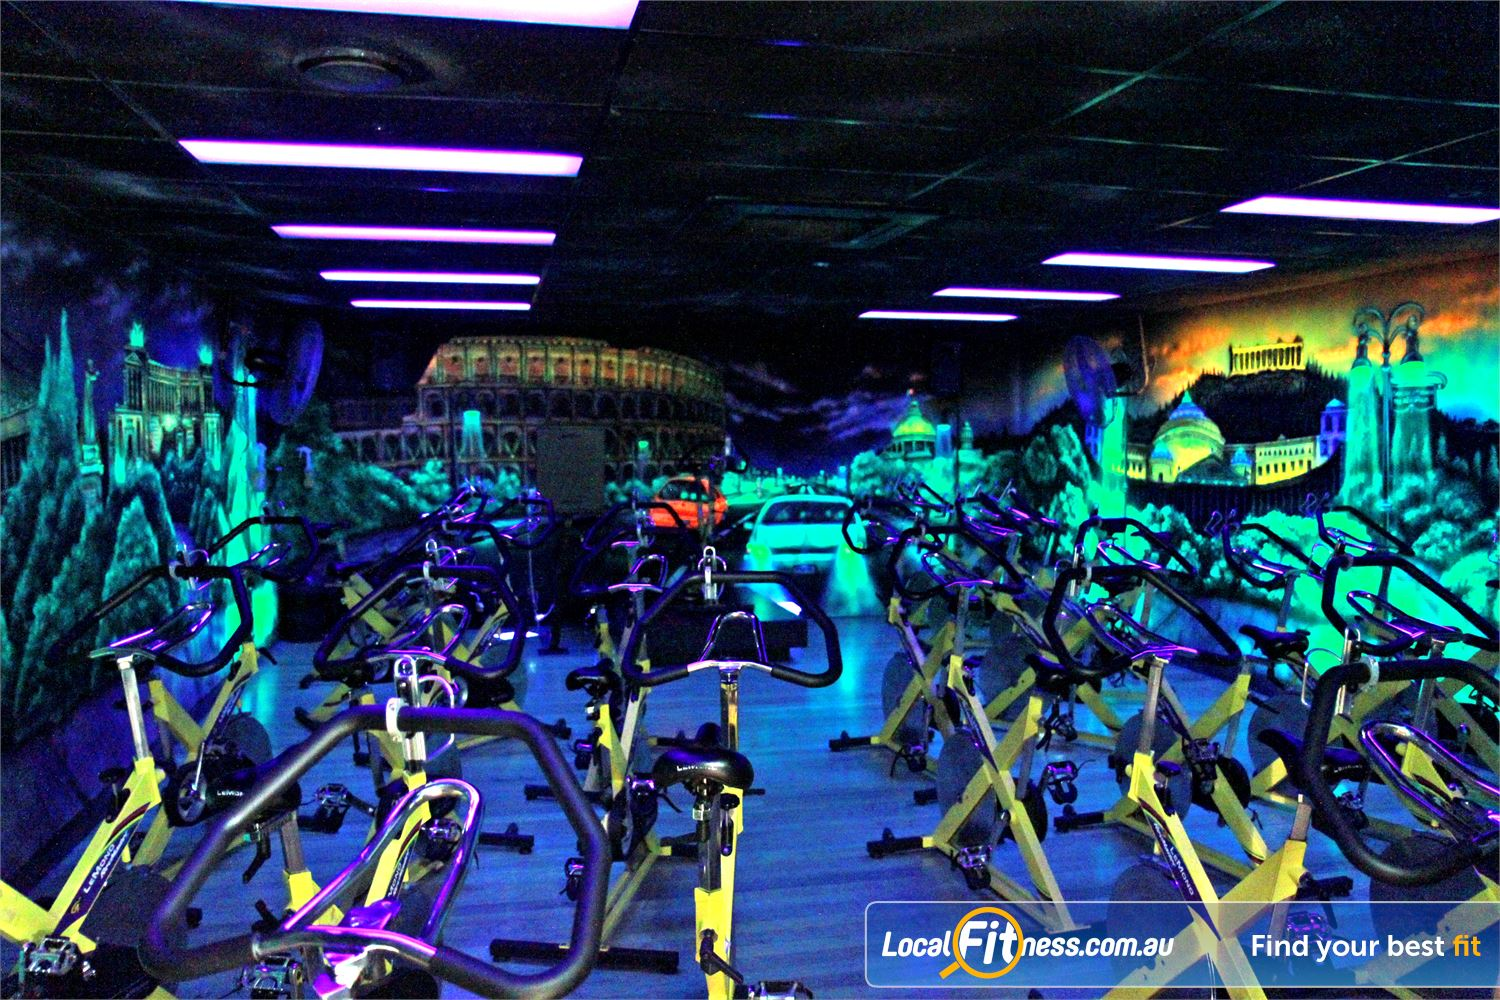 Goodlife Health Clubs Near Bulimba High energy instructors will help you burn calories in an energetic Morningside spin class.